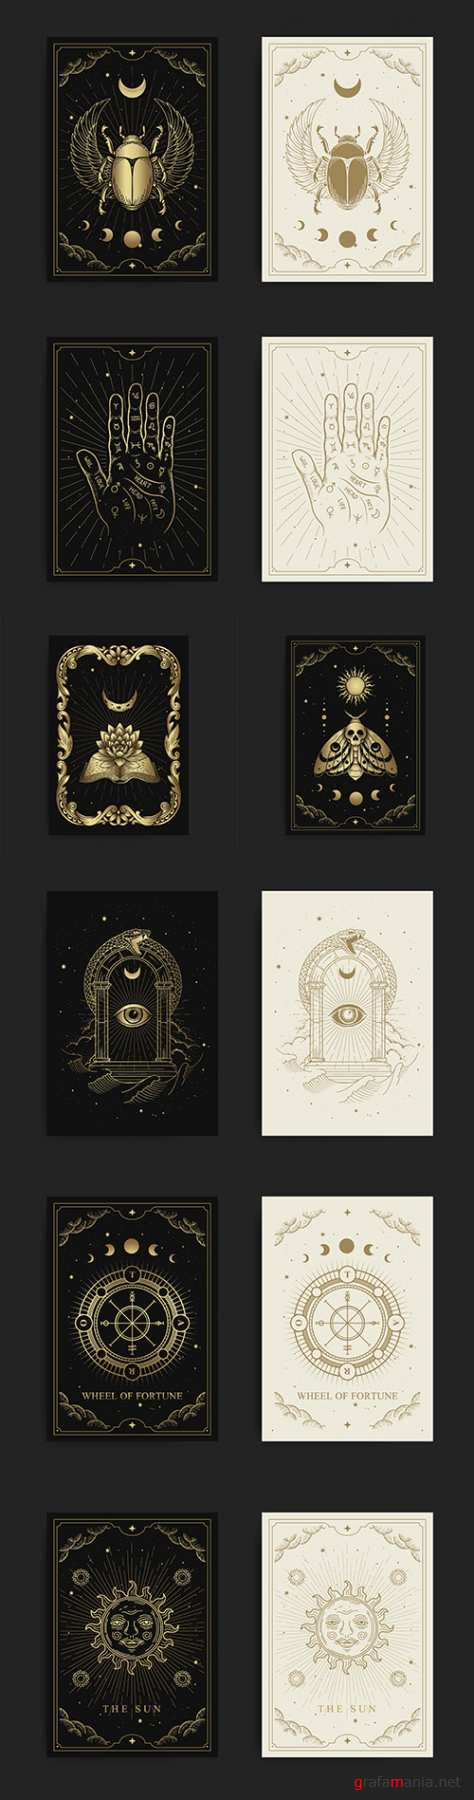 Esoteric boho style design paranormal astrologer phenomena